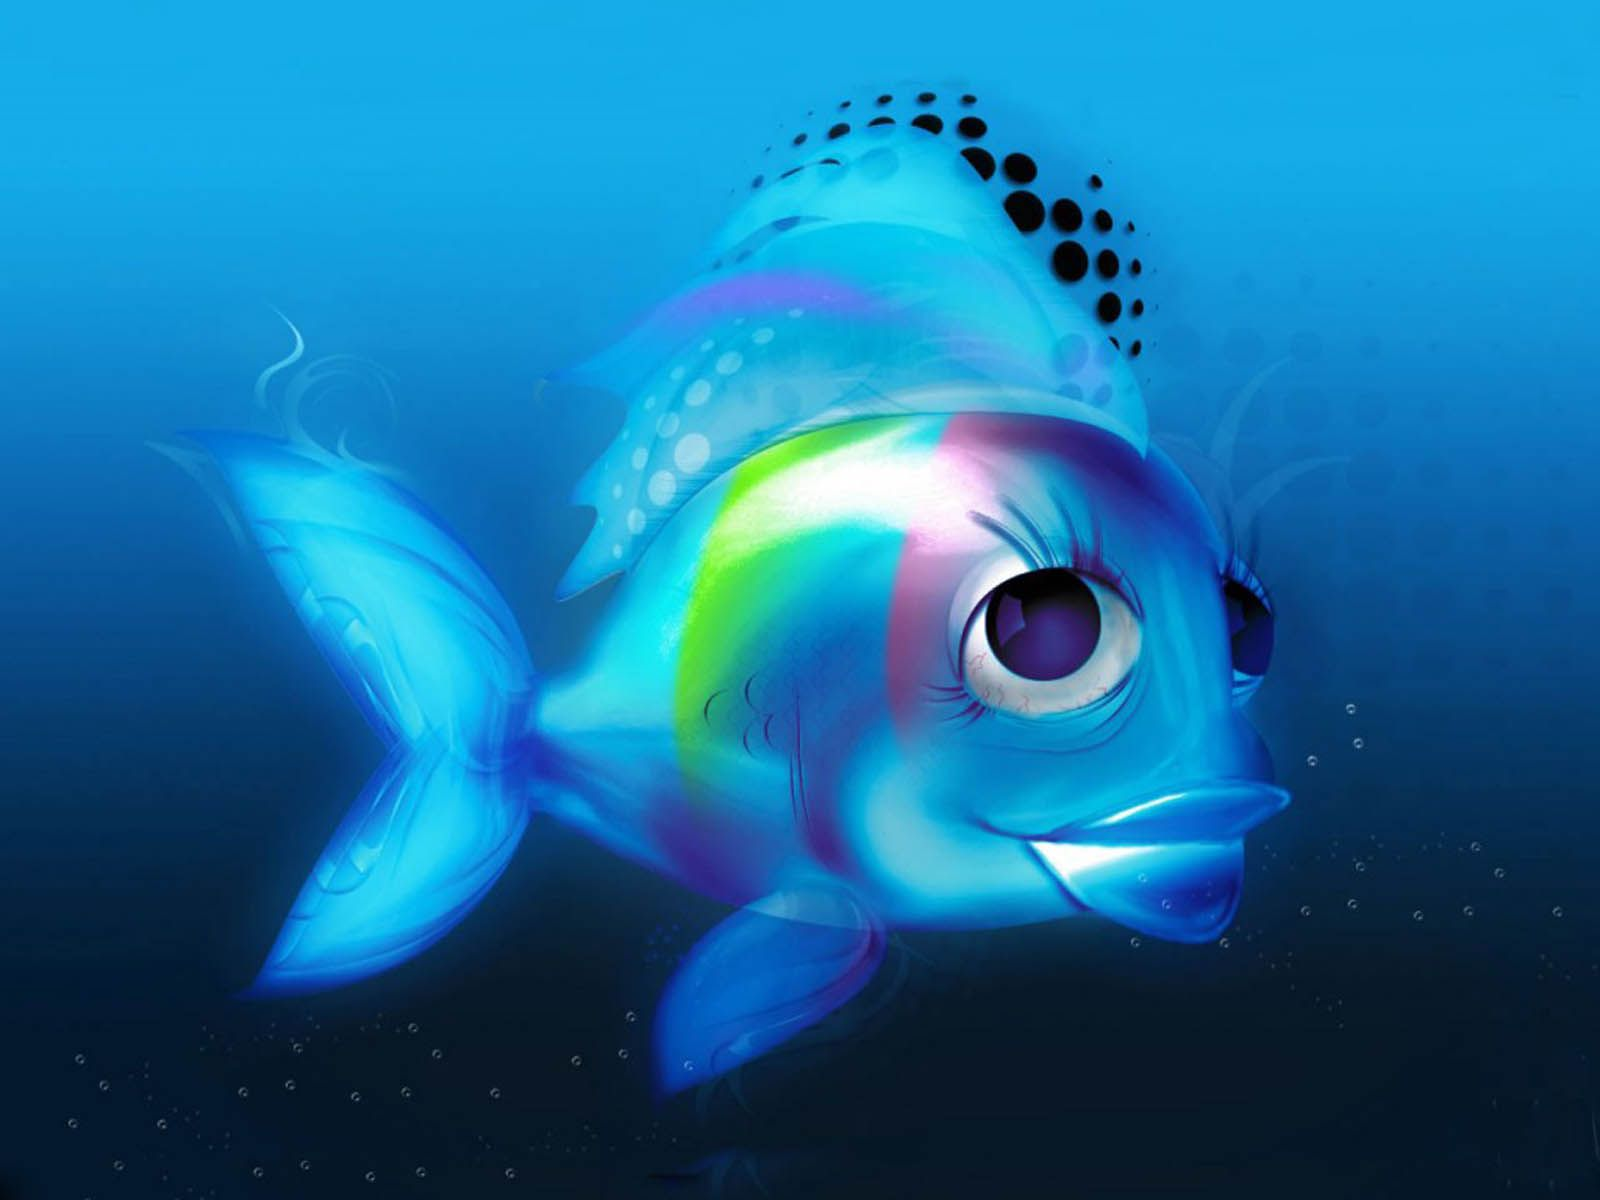 Wallpapers 3d Fish Wallpapers Fish Wallpaper Cartoon Fish Free Animated Wallpaper